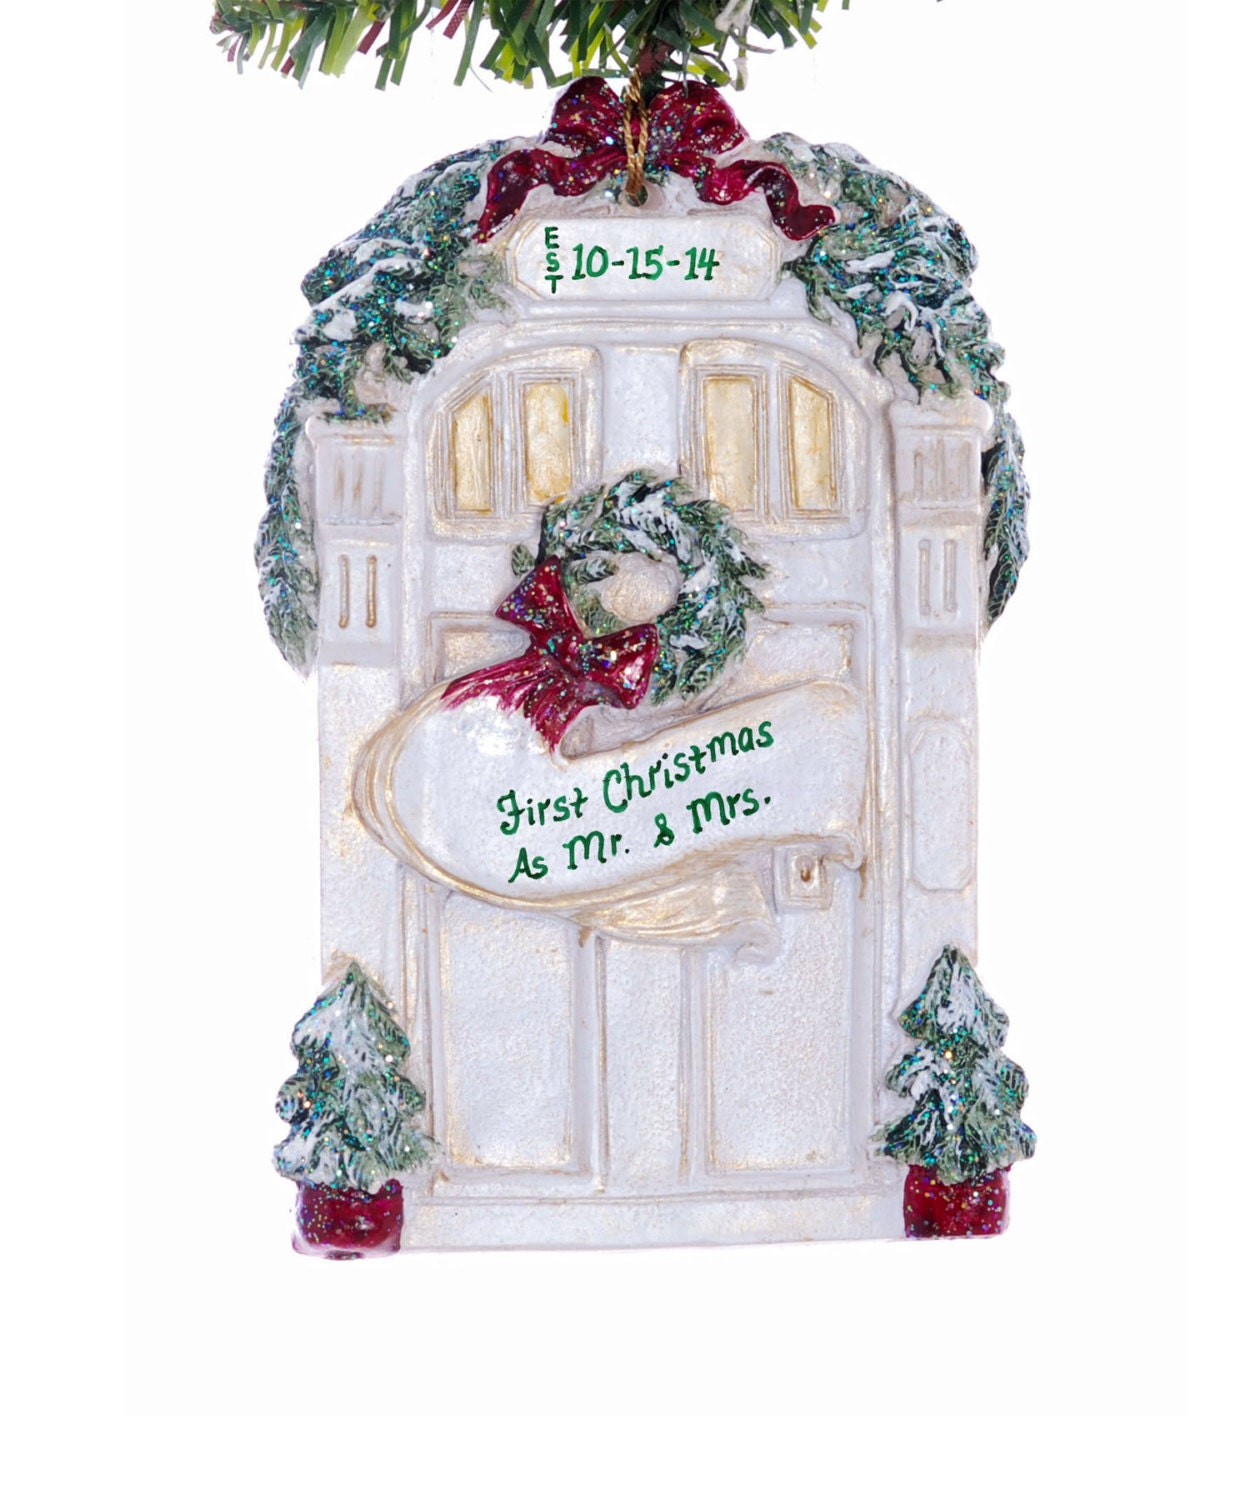 Christmas Ornament Personalized front door by Christmaskeeper